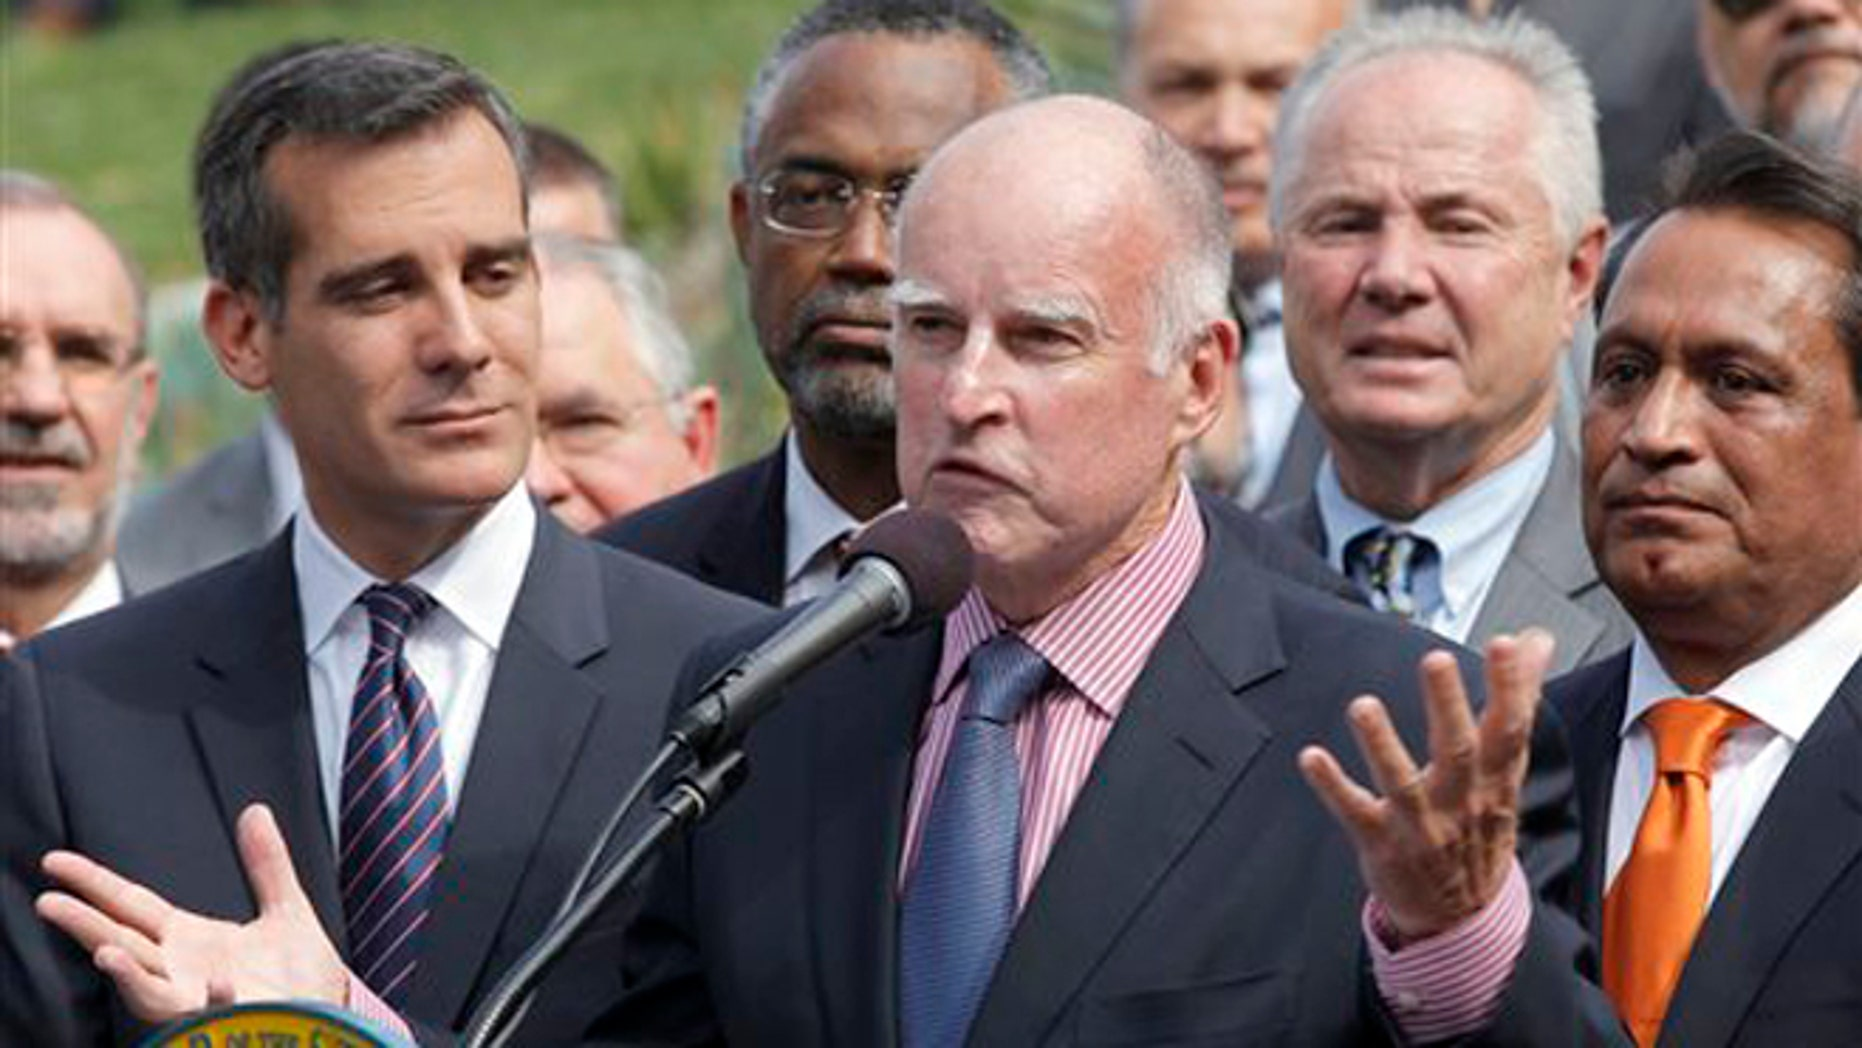 California Gov. Jerry Brown speaks at Los Angeles City Hall before signing the AB 60  bill in Los Angeles Thursday, Oct 3, 2013. The bill adds California to the growing list of states allowing immigrants in the country illegally to obtain driver licenses. (AP Photo/Nick Ut)